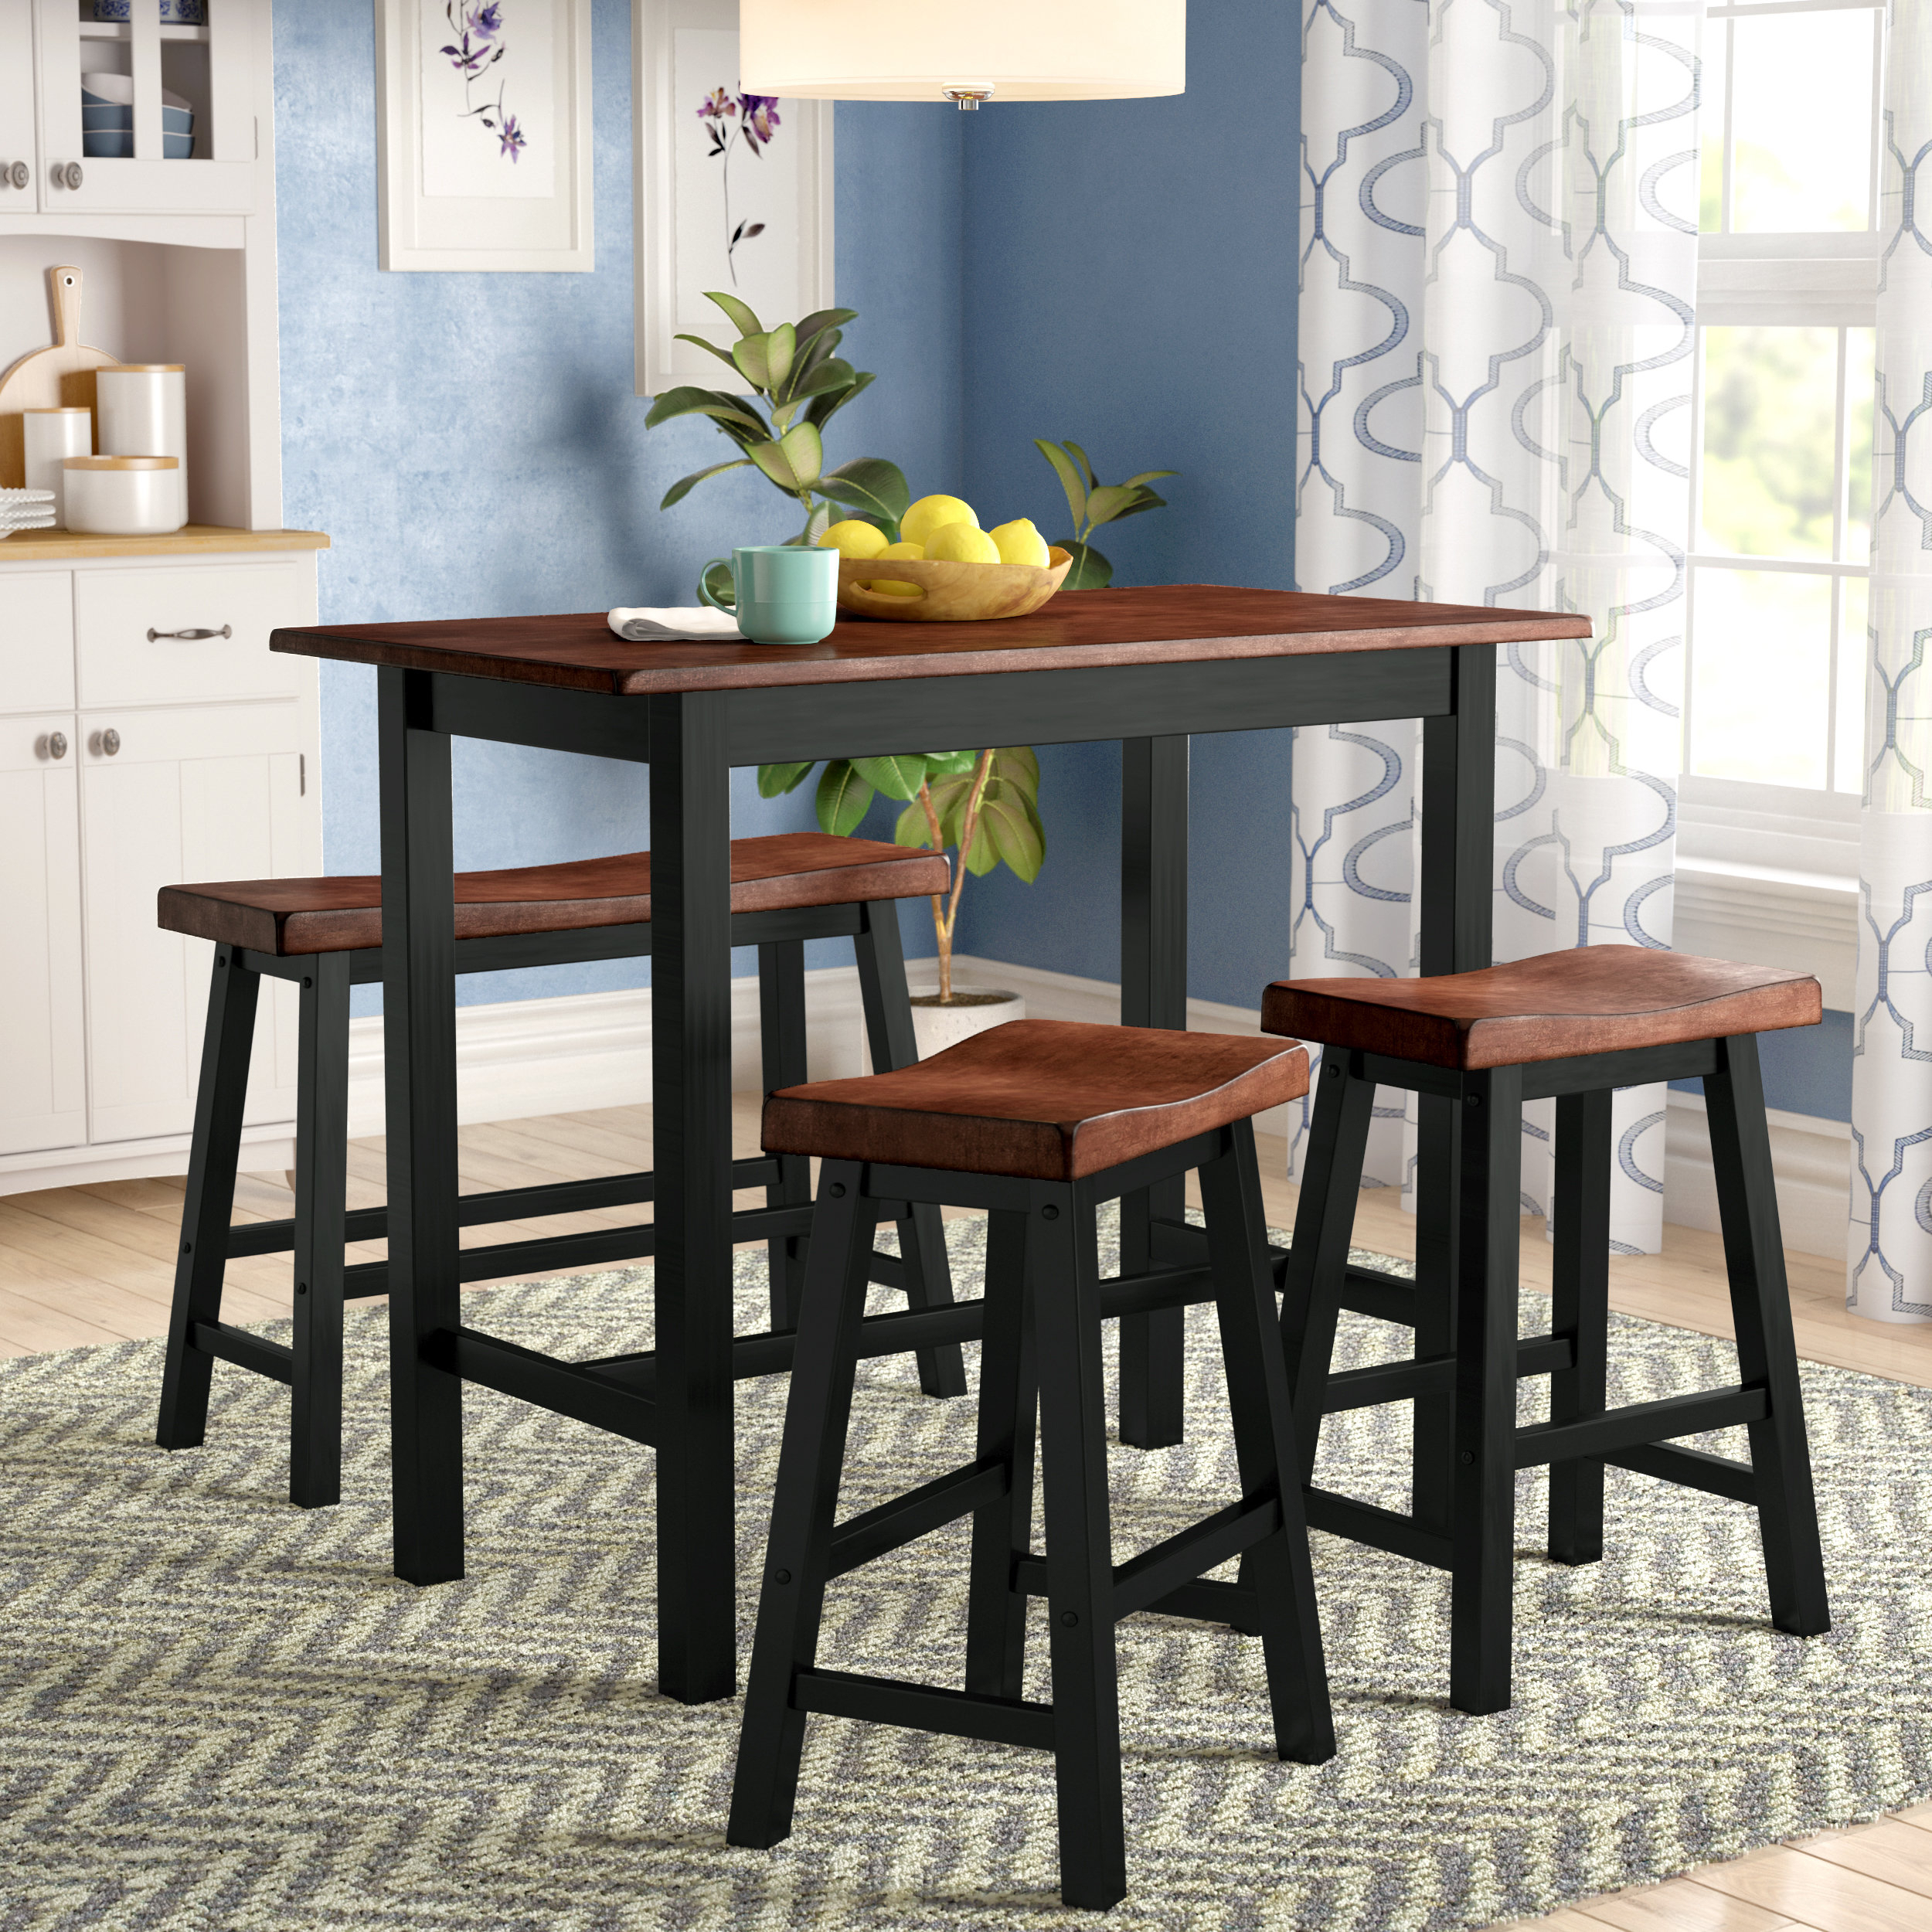 Winsted 4 Piece Counter Height Dining Set For Most Up To Date Kerley 4 Piece Dining Sets (Image 20 of 20)